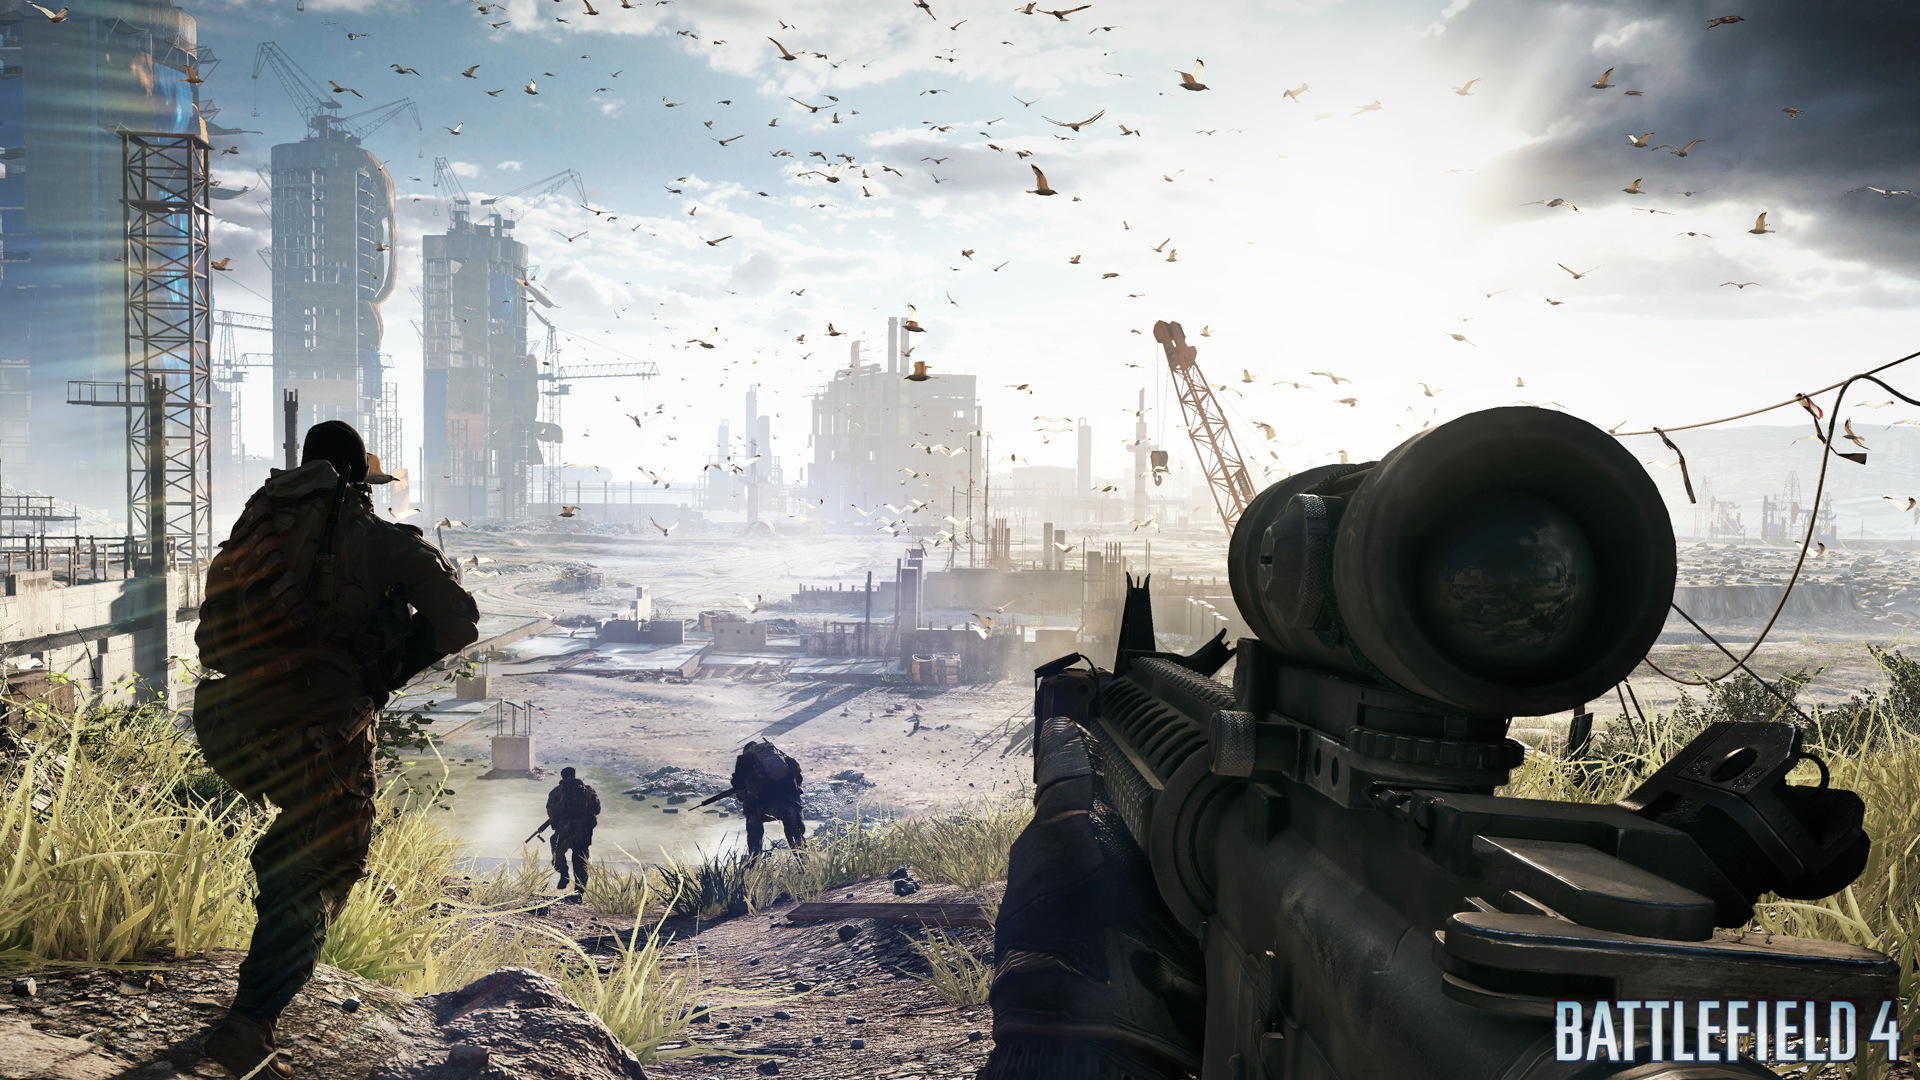 'Battlefield 4' receives debut trailer, 17 minutes of gameplay